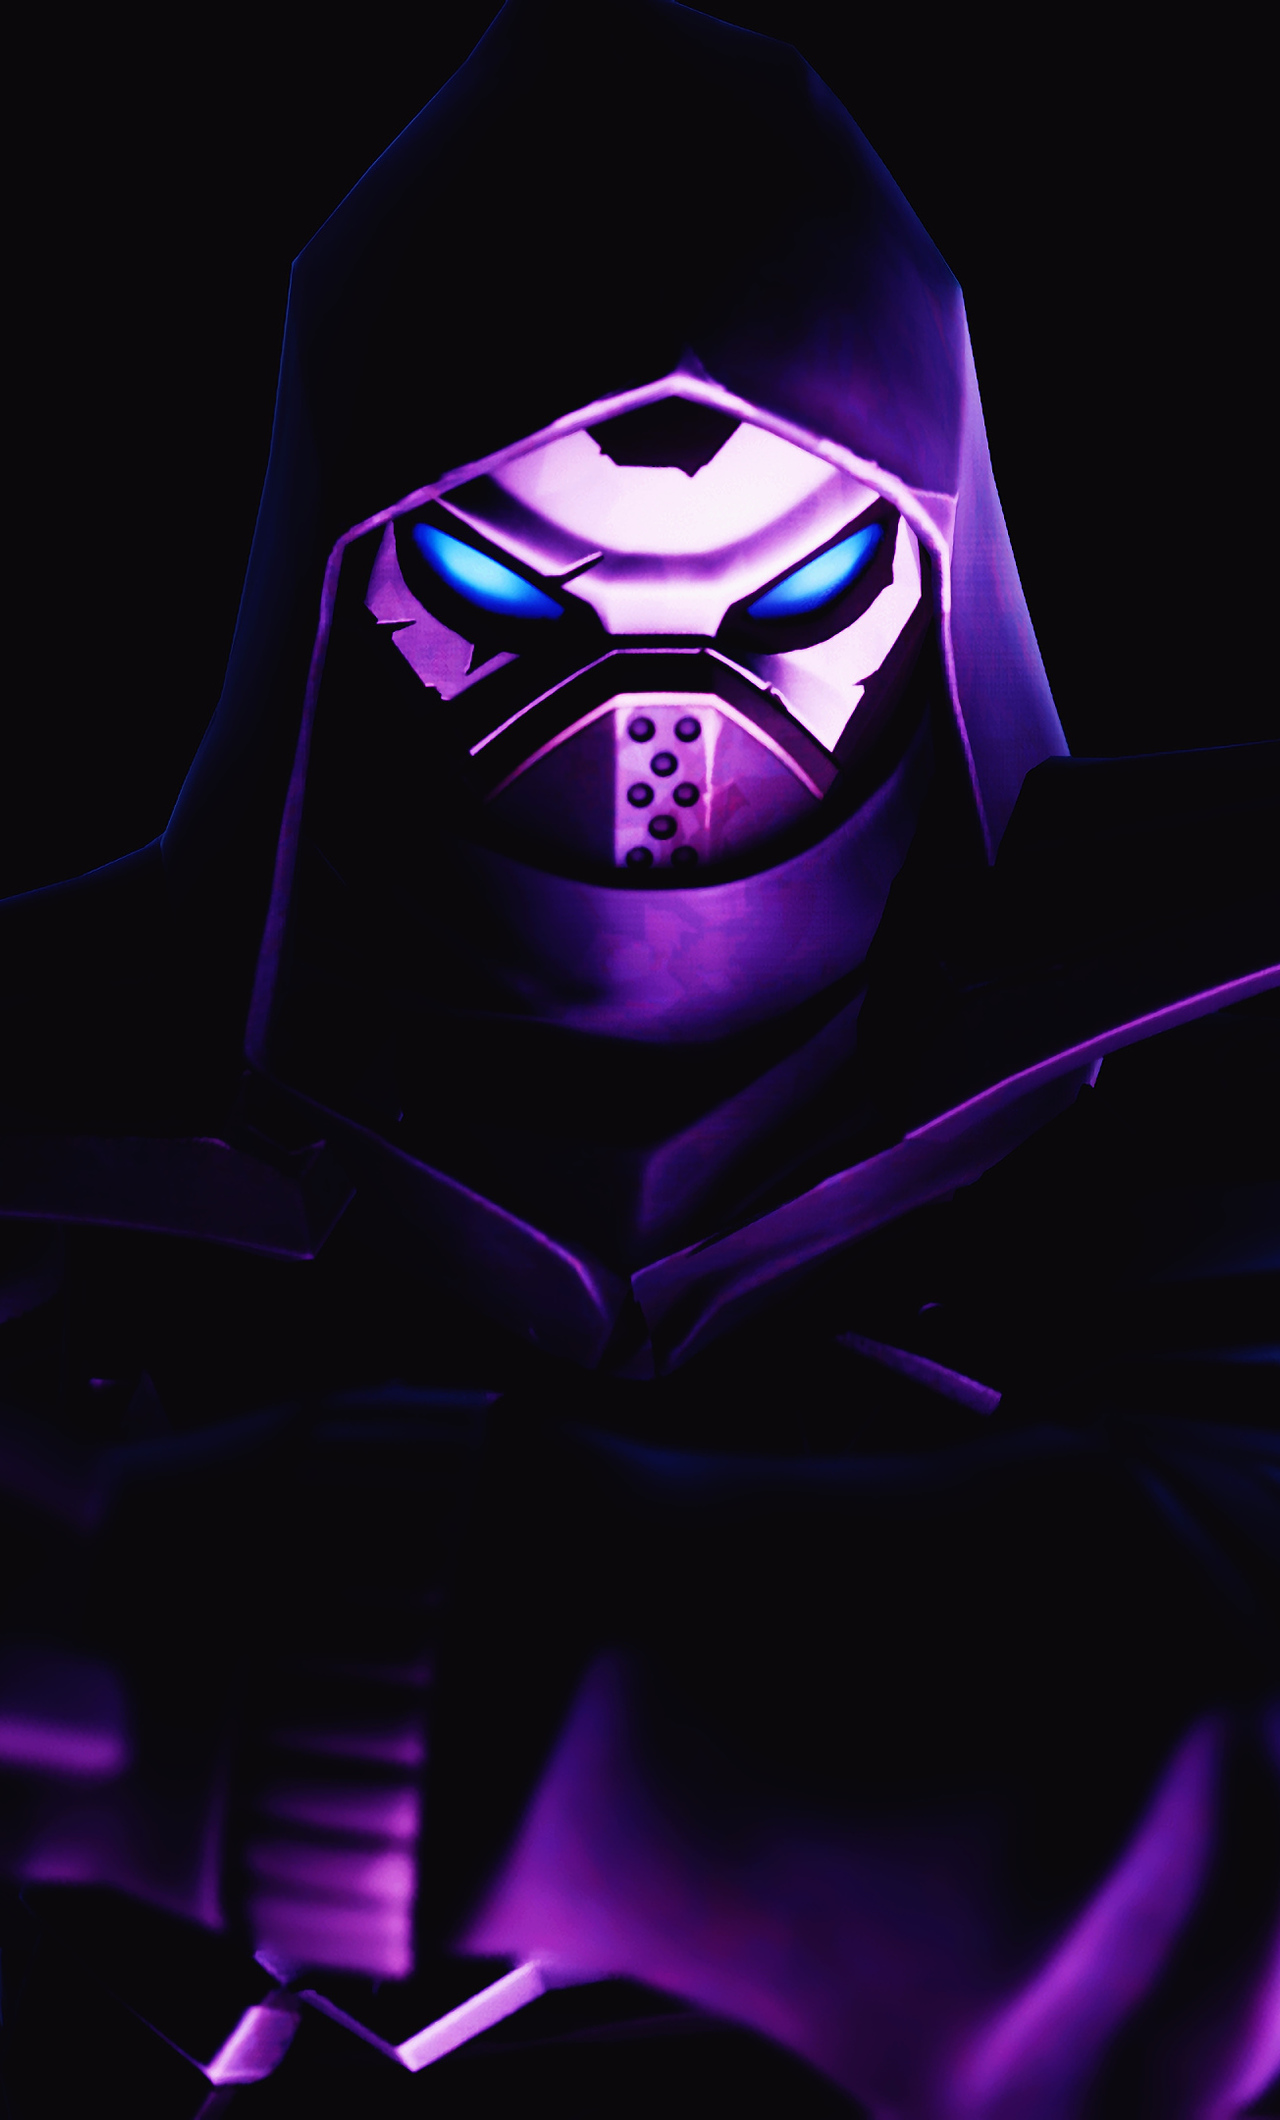 Free Download 1280x2120 Fortnite The Enforcer 4k Iphone 6 Hd 4k Wallpapers 1280x2120 For Your Desktop Mobile Tablet Explore 26 Enforcer Fortnite Wallpapers Enforcer Fortnite Wallpapers Fortnite Wallpapers Fortnite Wallpaper